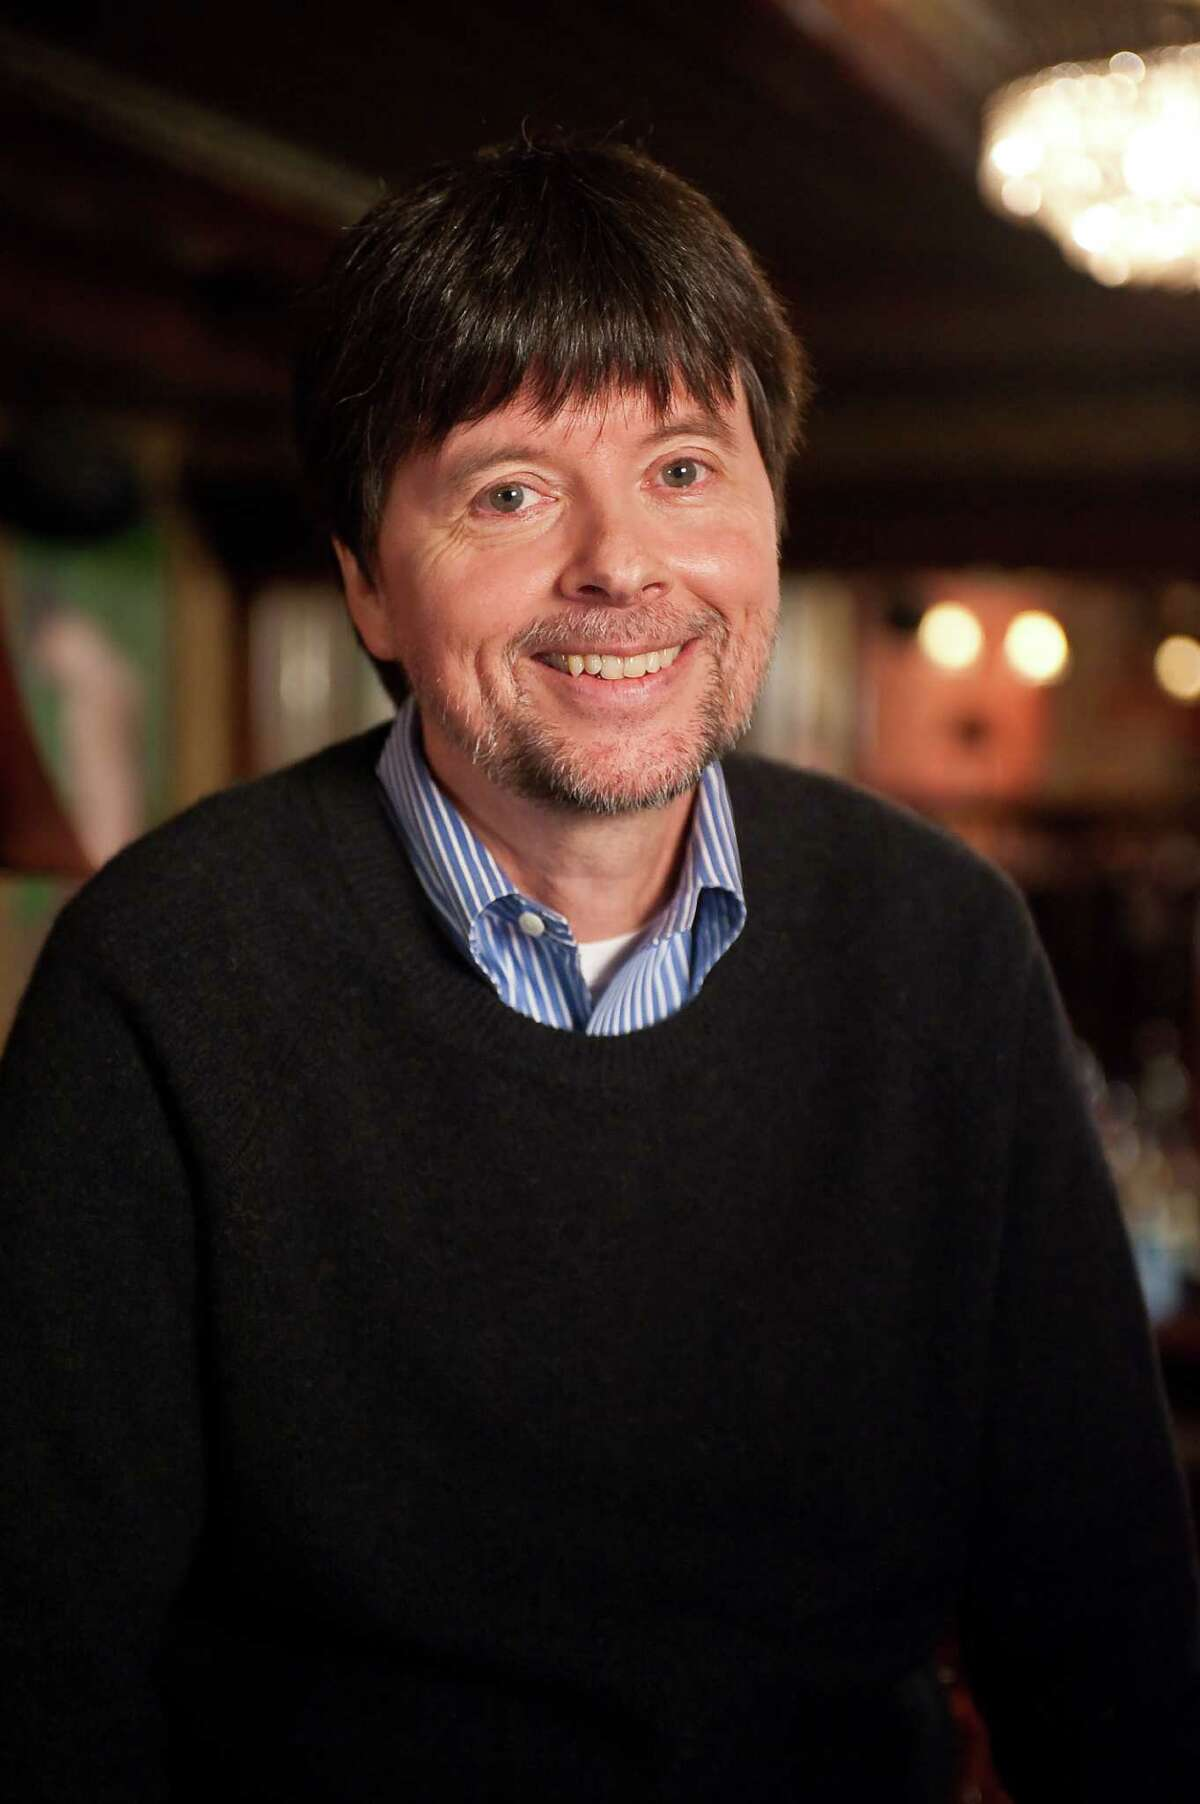 Photos of Ken Burns and Lynn Novick for their new documentary on Prohibition to be shown on PBS, taken on October 28, 2010. Credit: Stephanie Berger